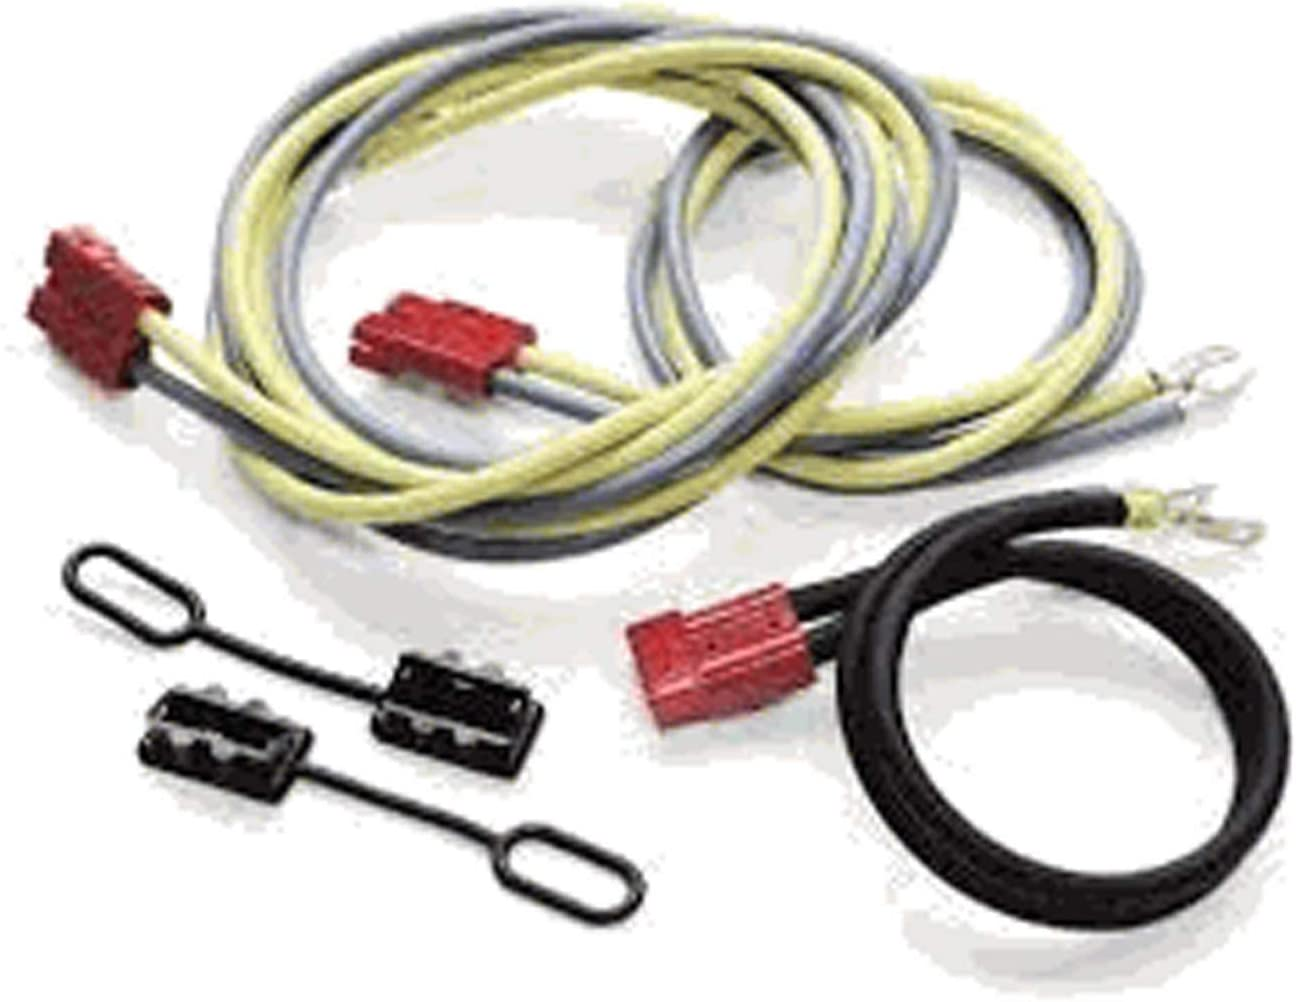 warn a2500 wiring diagram atv winch wiring harness books of wiring diagram  atv winch wiring harness books of